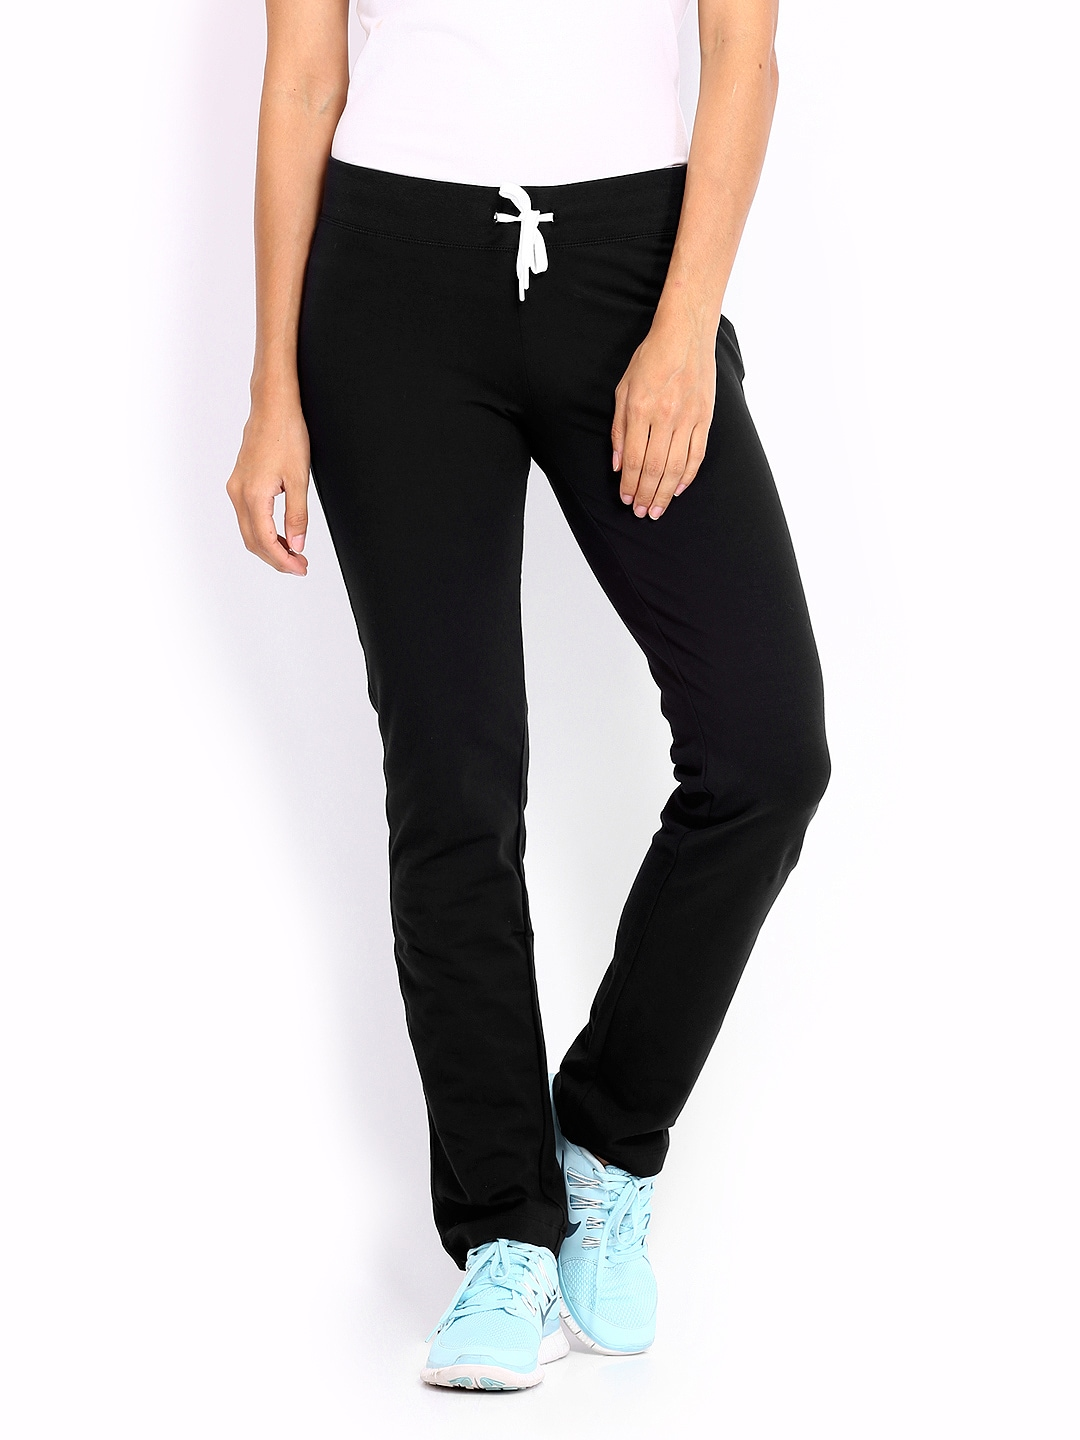 Cool Nike Women Charcoal Grey Legend Track Pants Online Shopping India